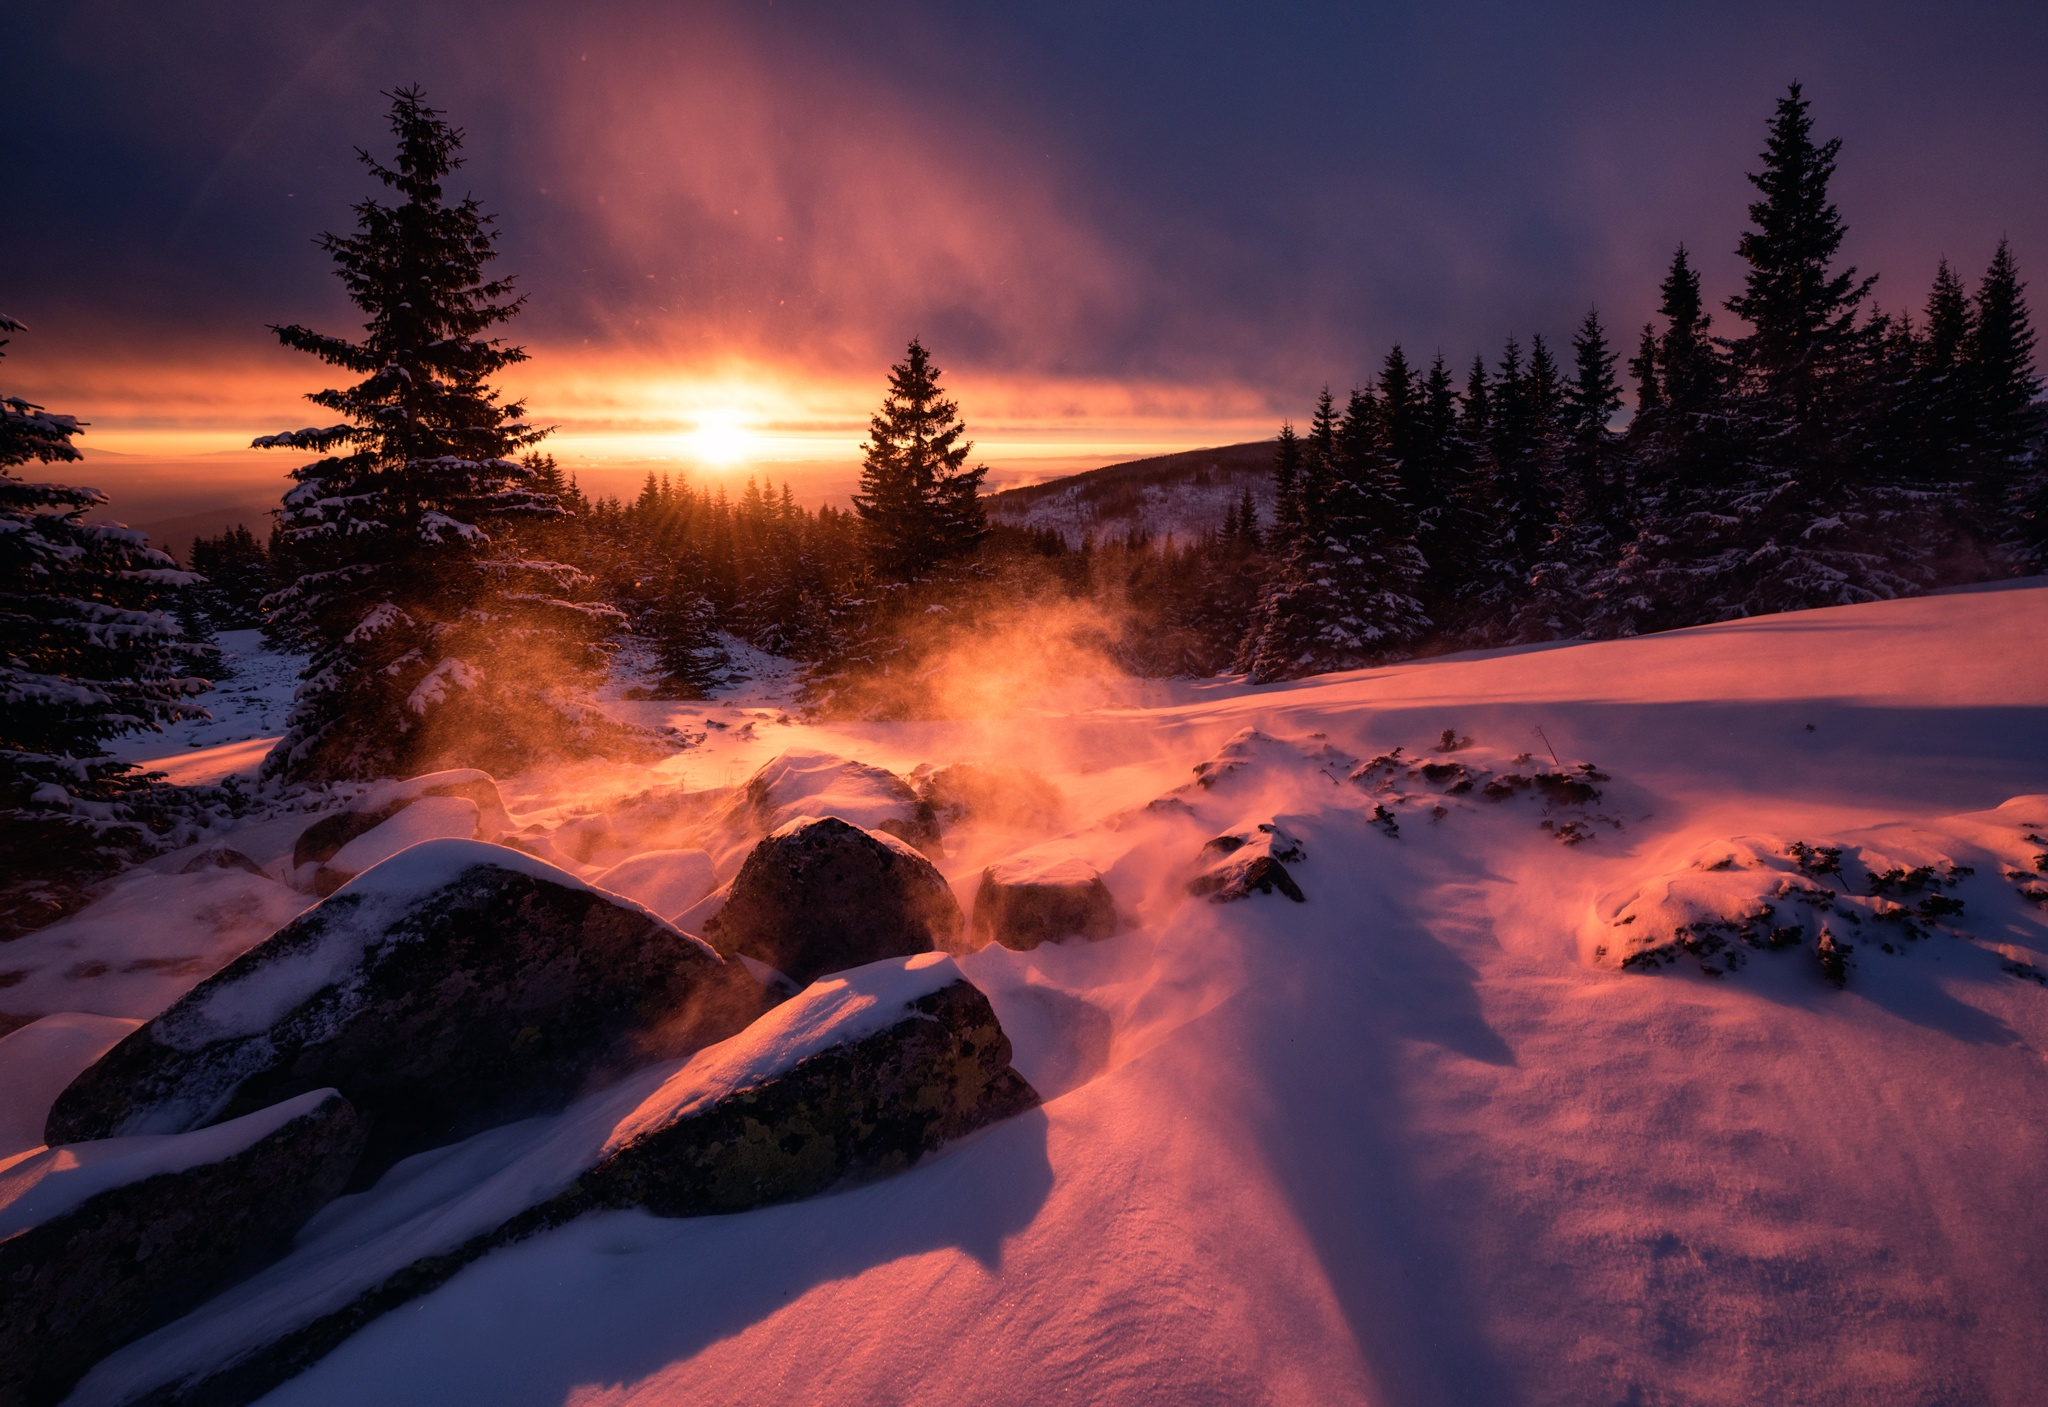 Winter Snow Sunset Hd Nature 4k Wallpapers Images